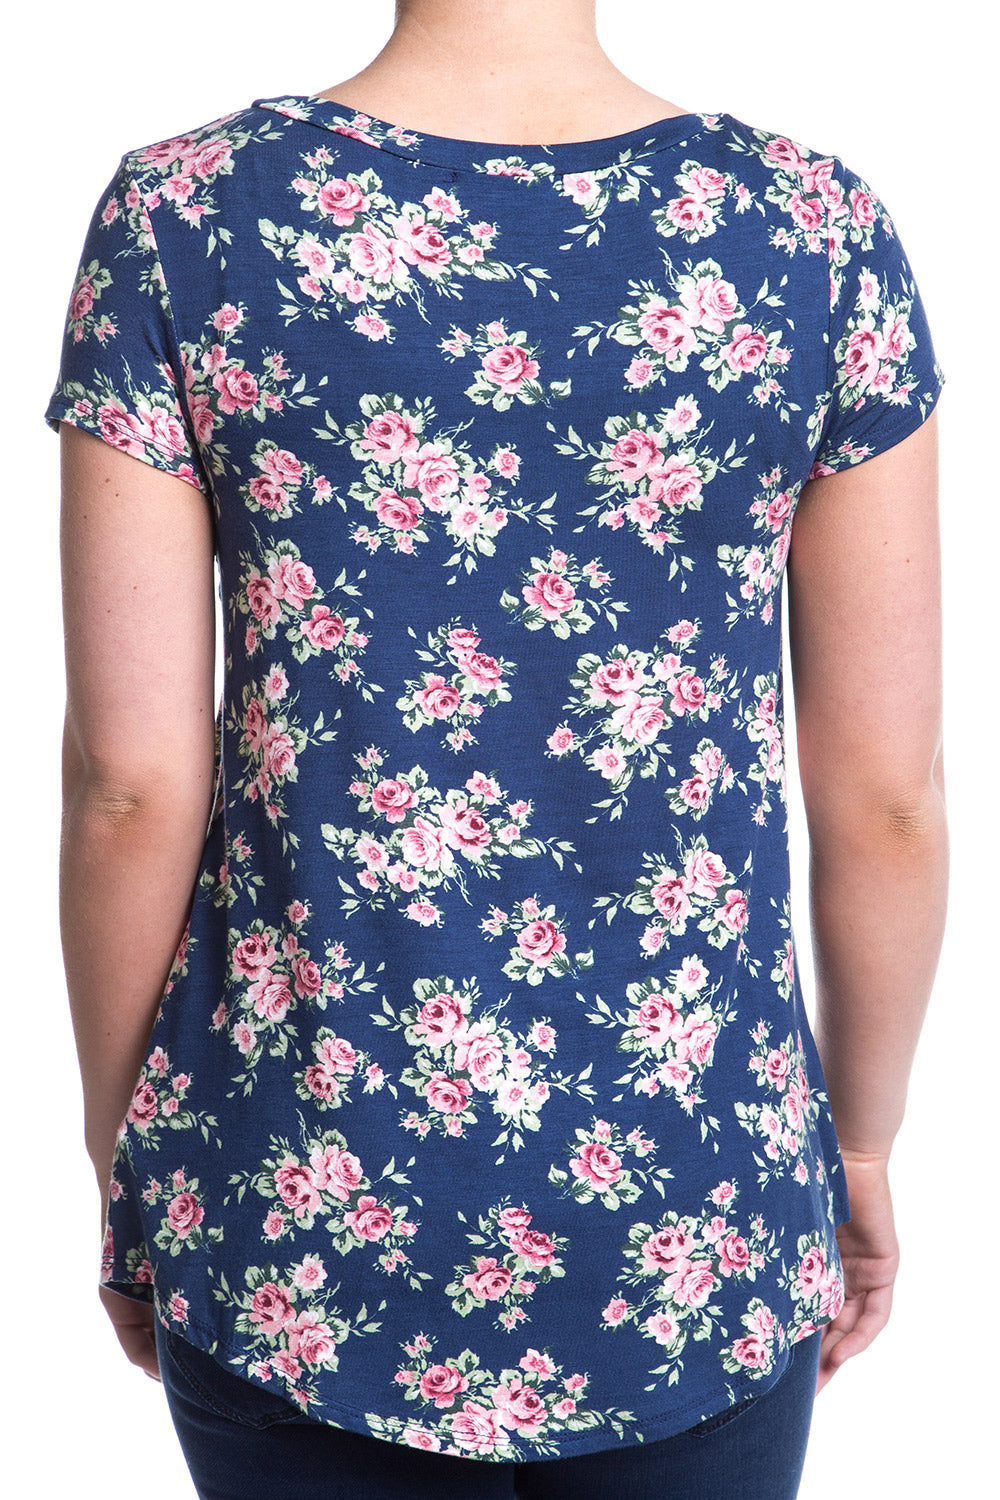 Type 2 Fabulous Floral Top